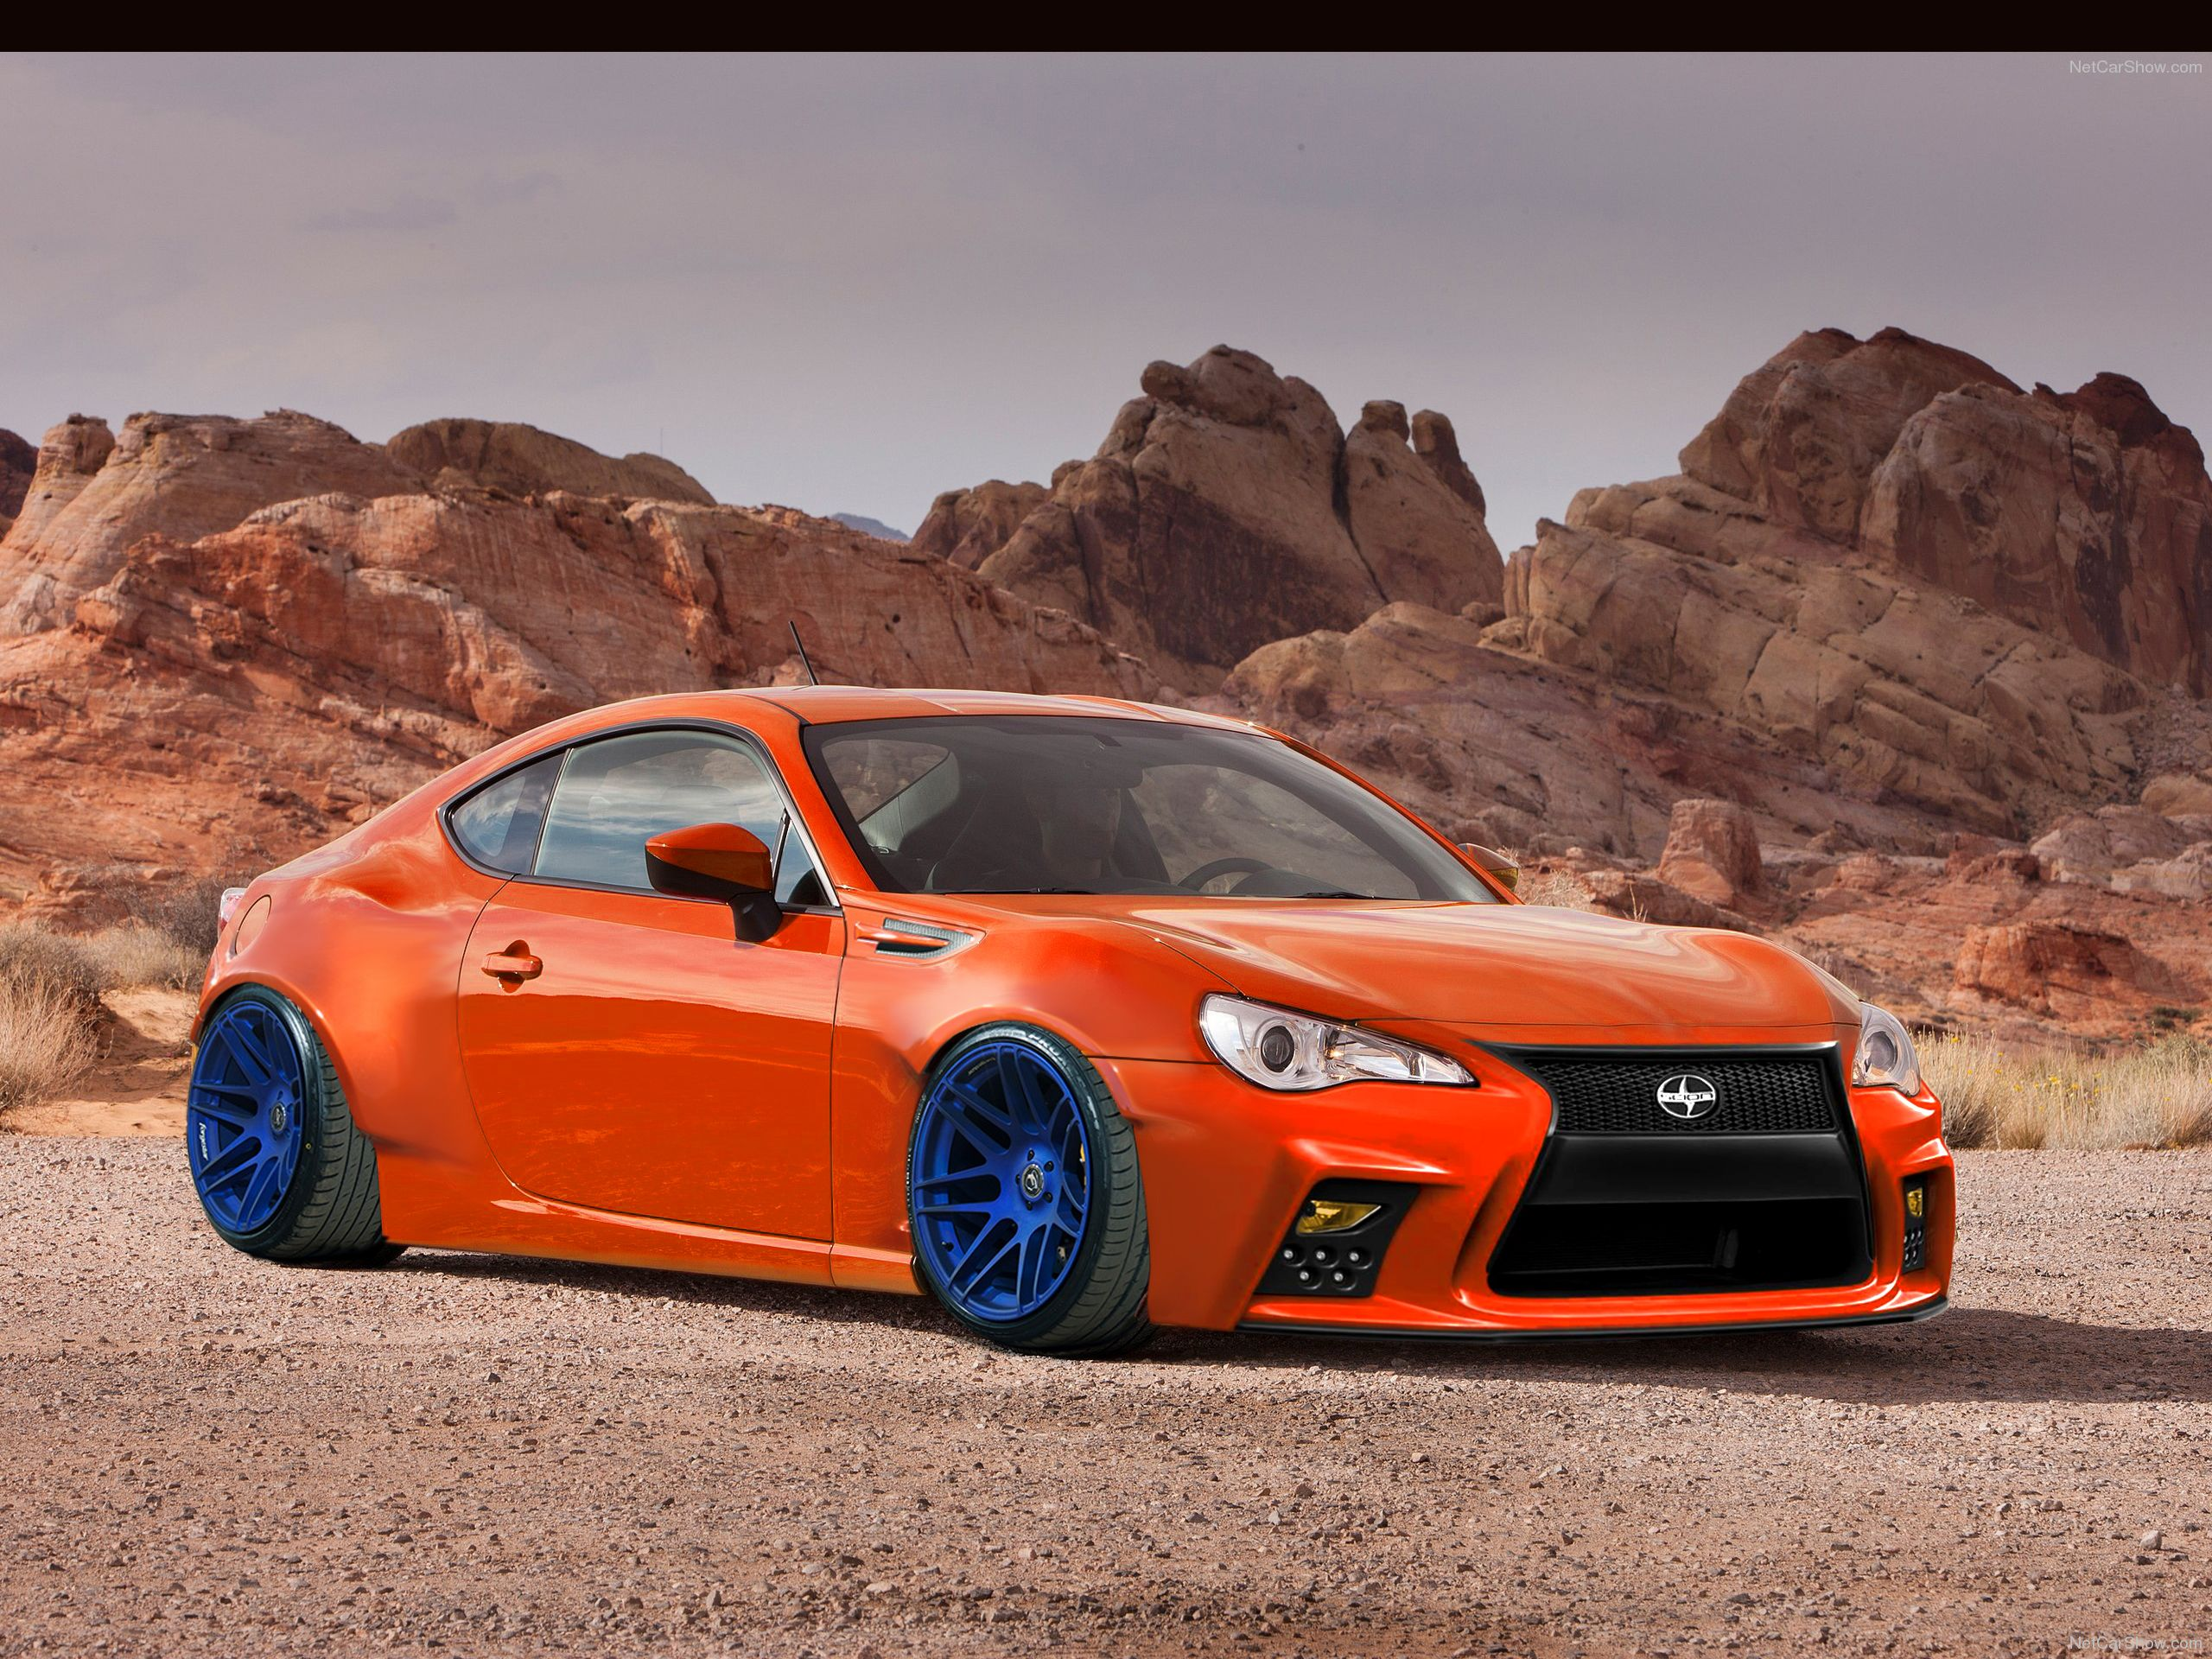 2014 toyota scion fr s coupe is a sports vehicle for young people and for people who like to feel adrenalin in the blood